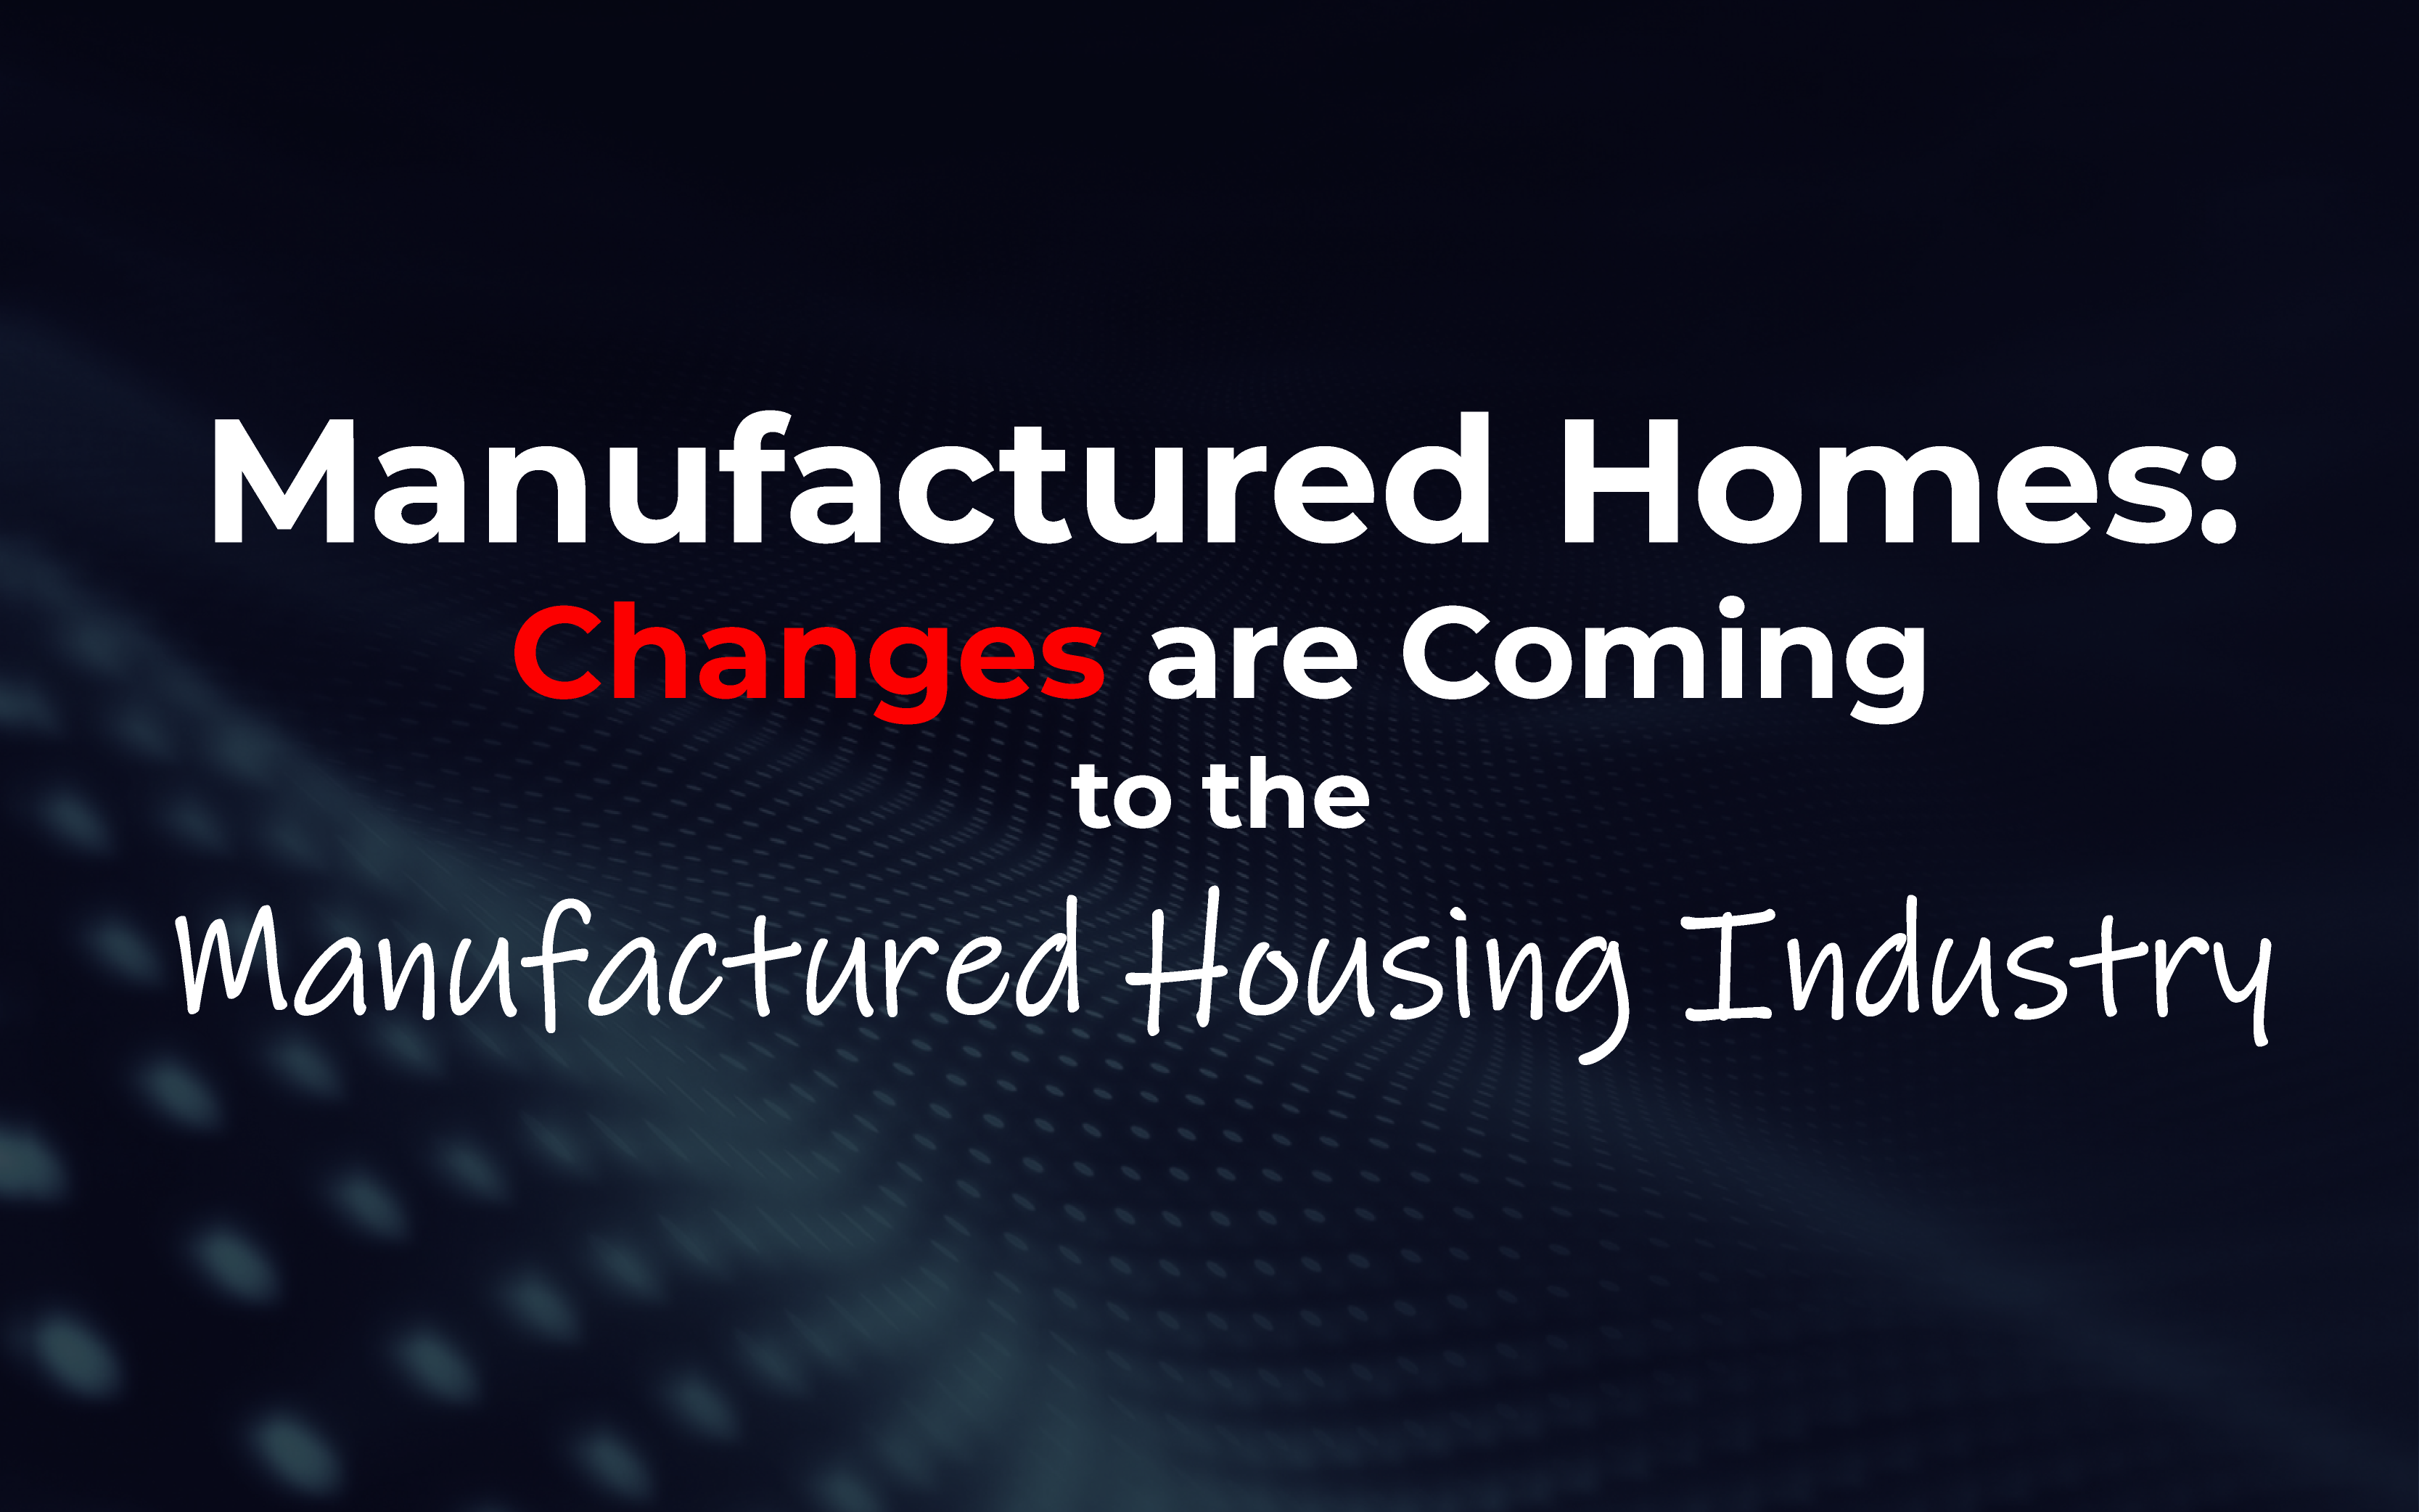 Changes Are Coming to the Manufactured Housing Industry